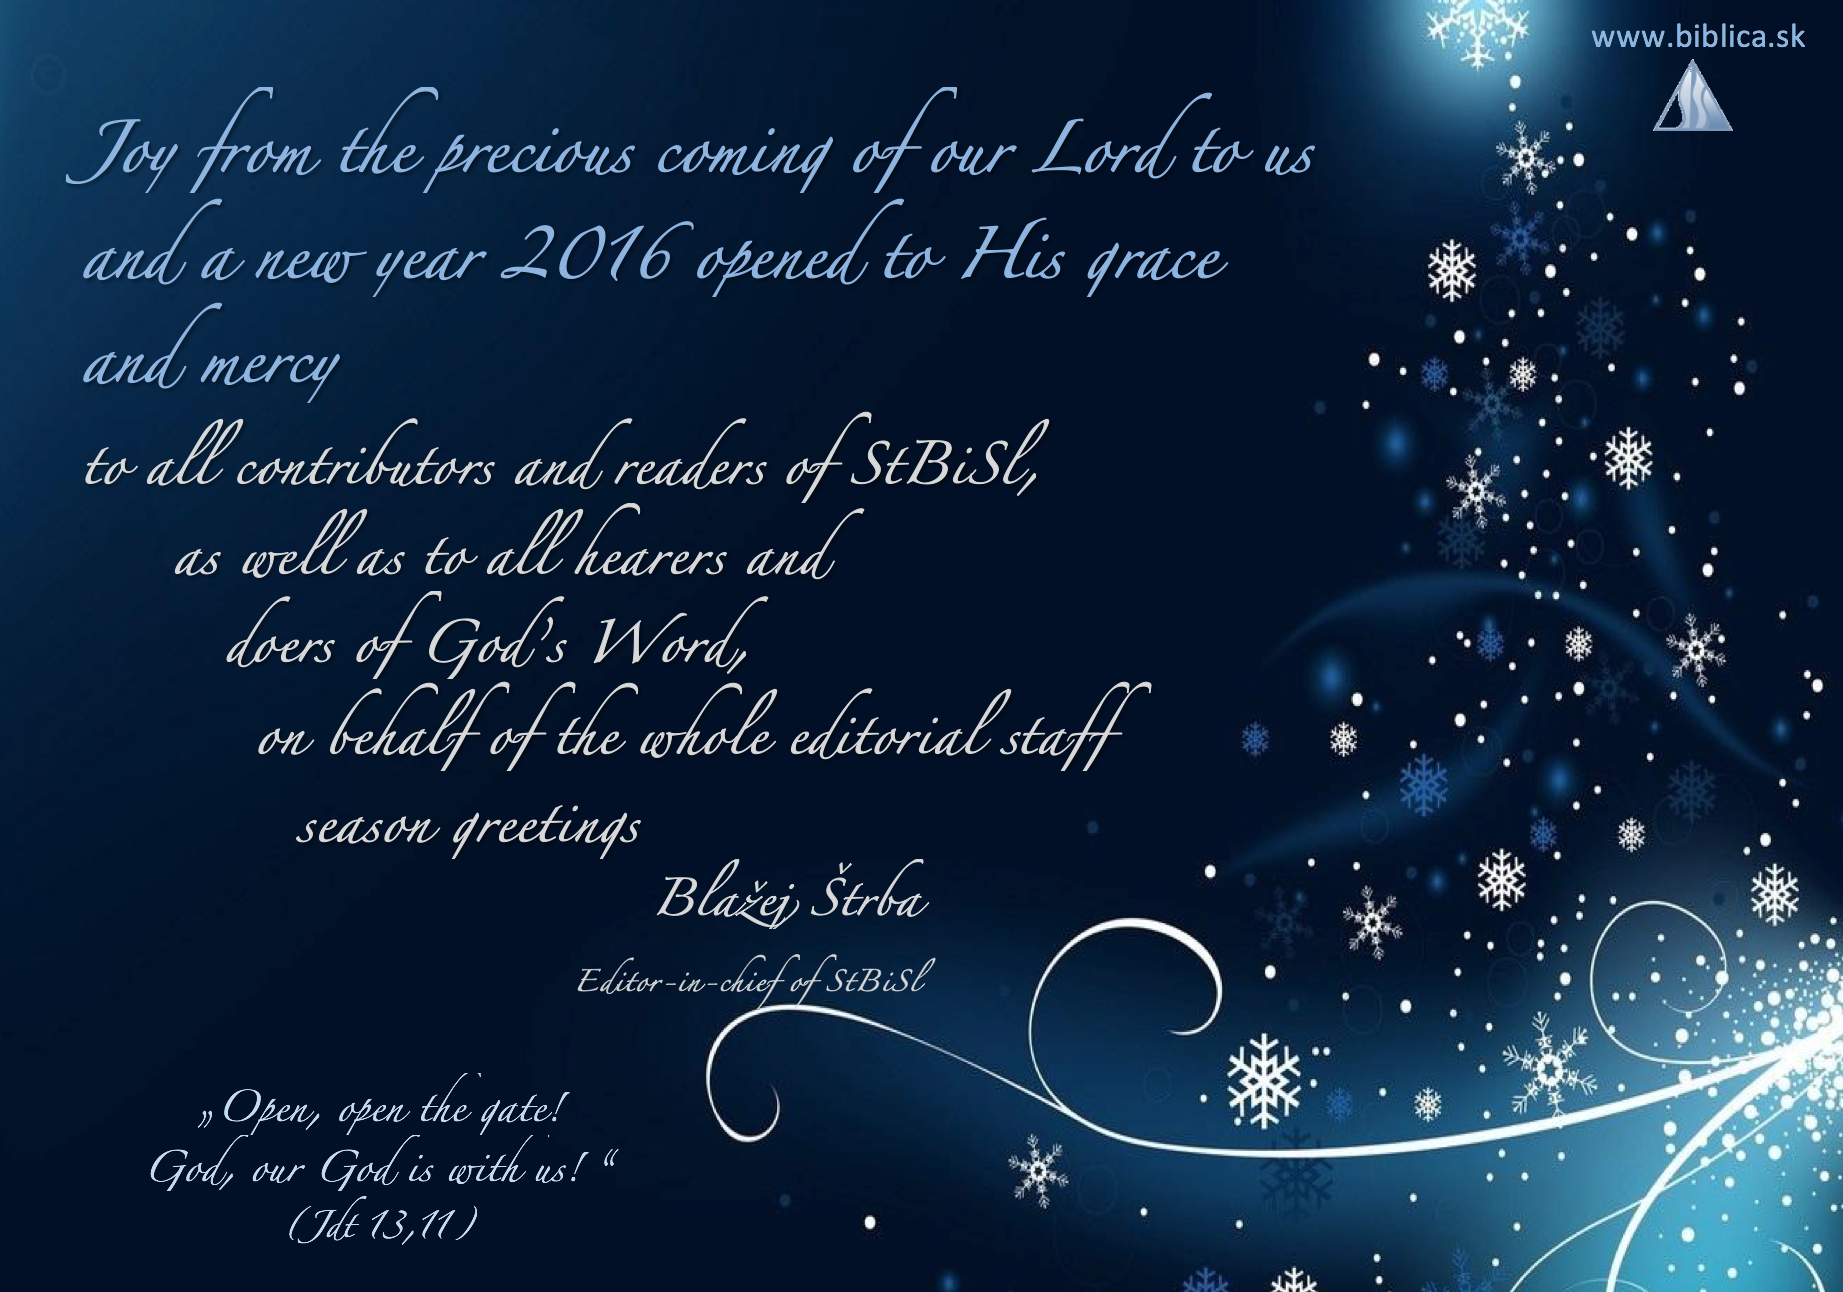 Christmas greeting 2015